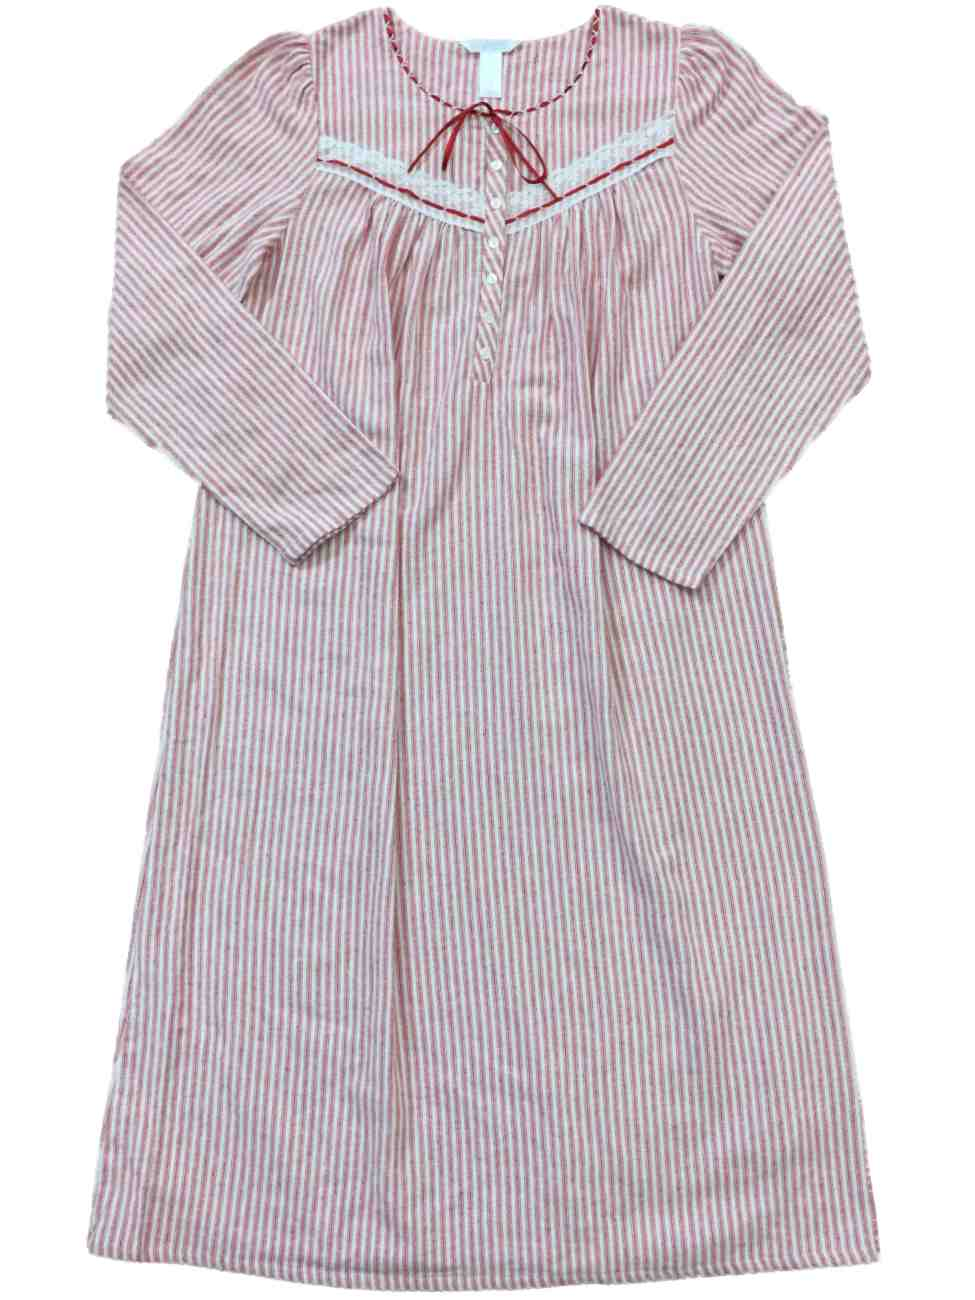 flannel nightgowns Striped